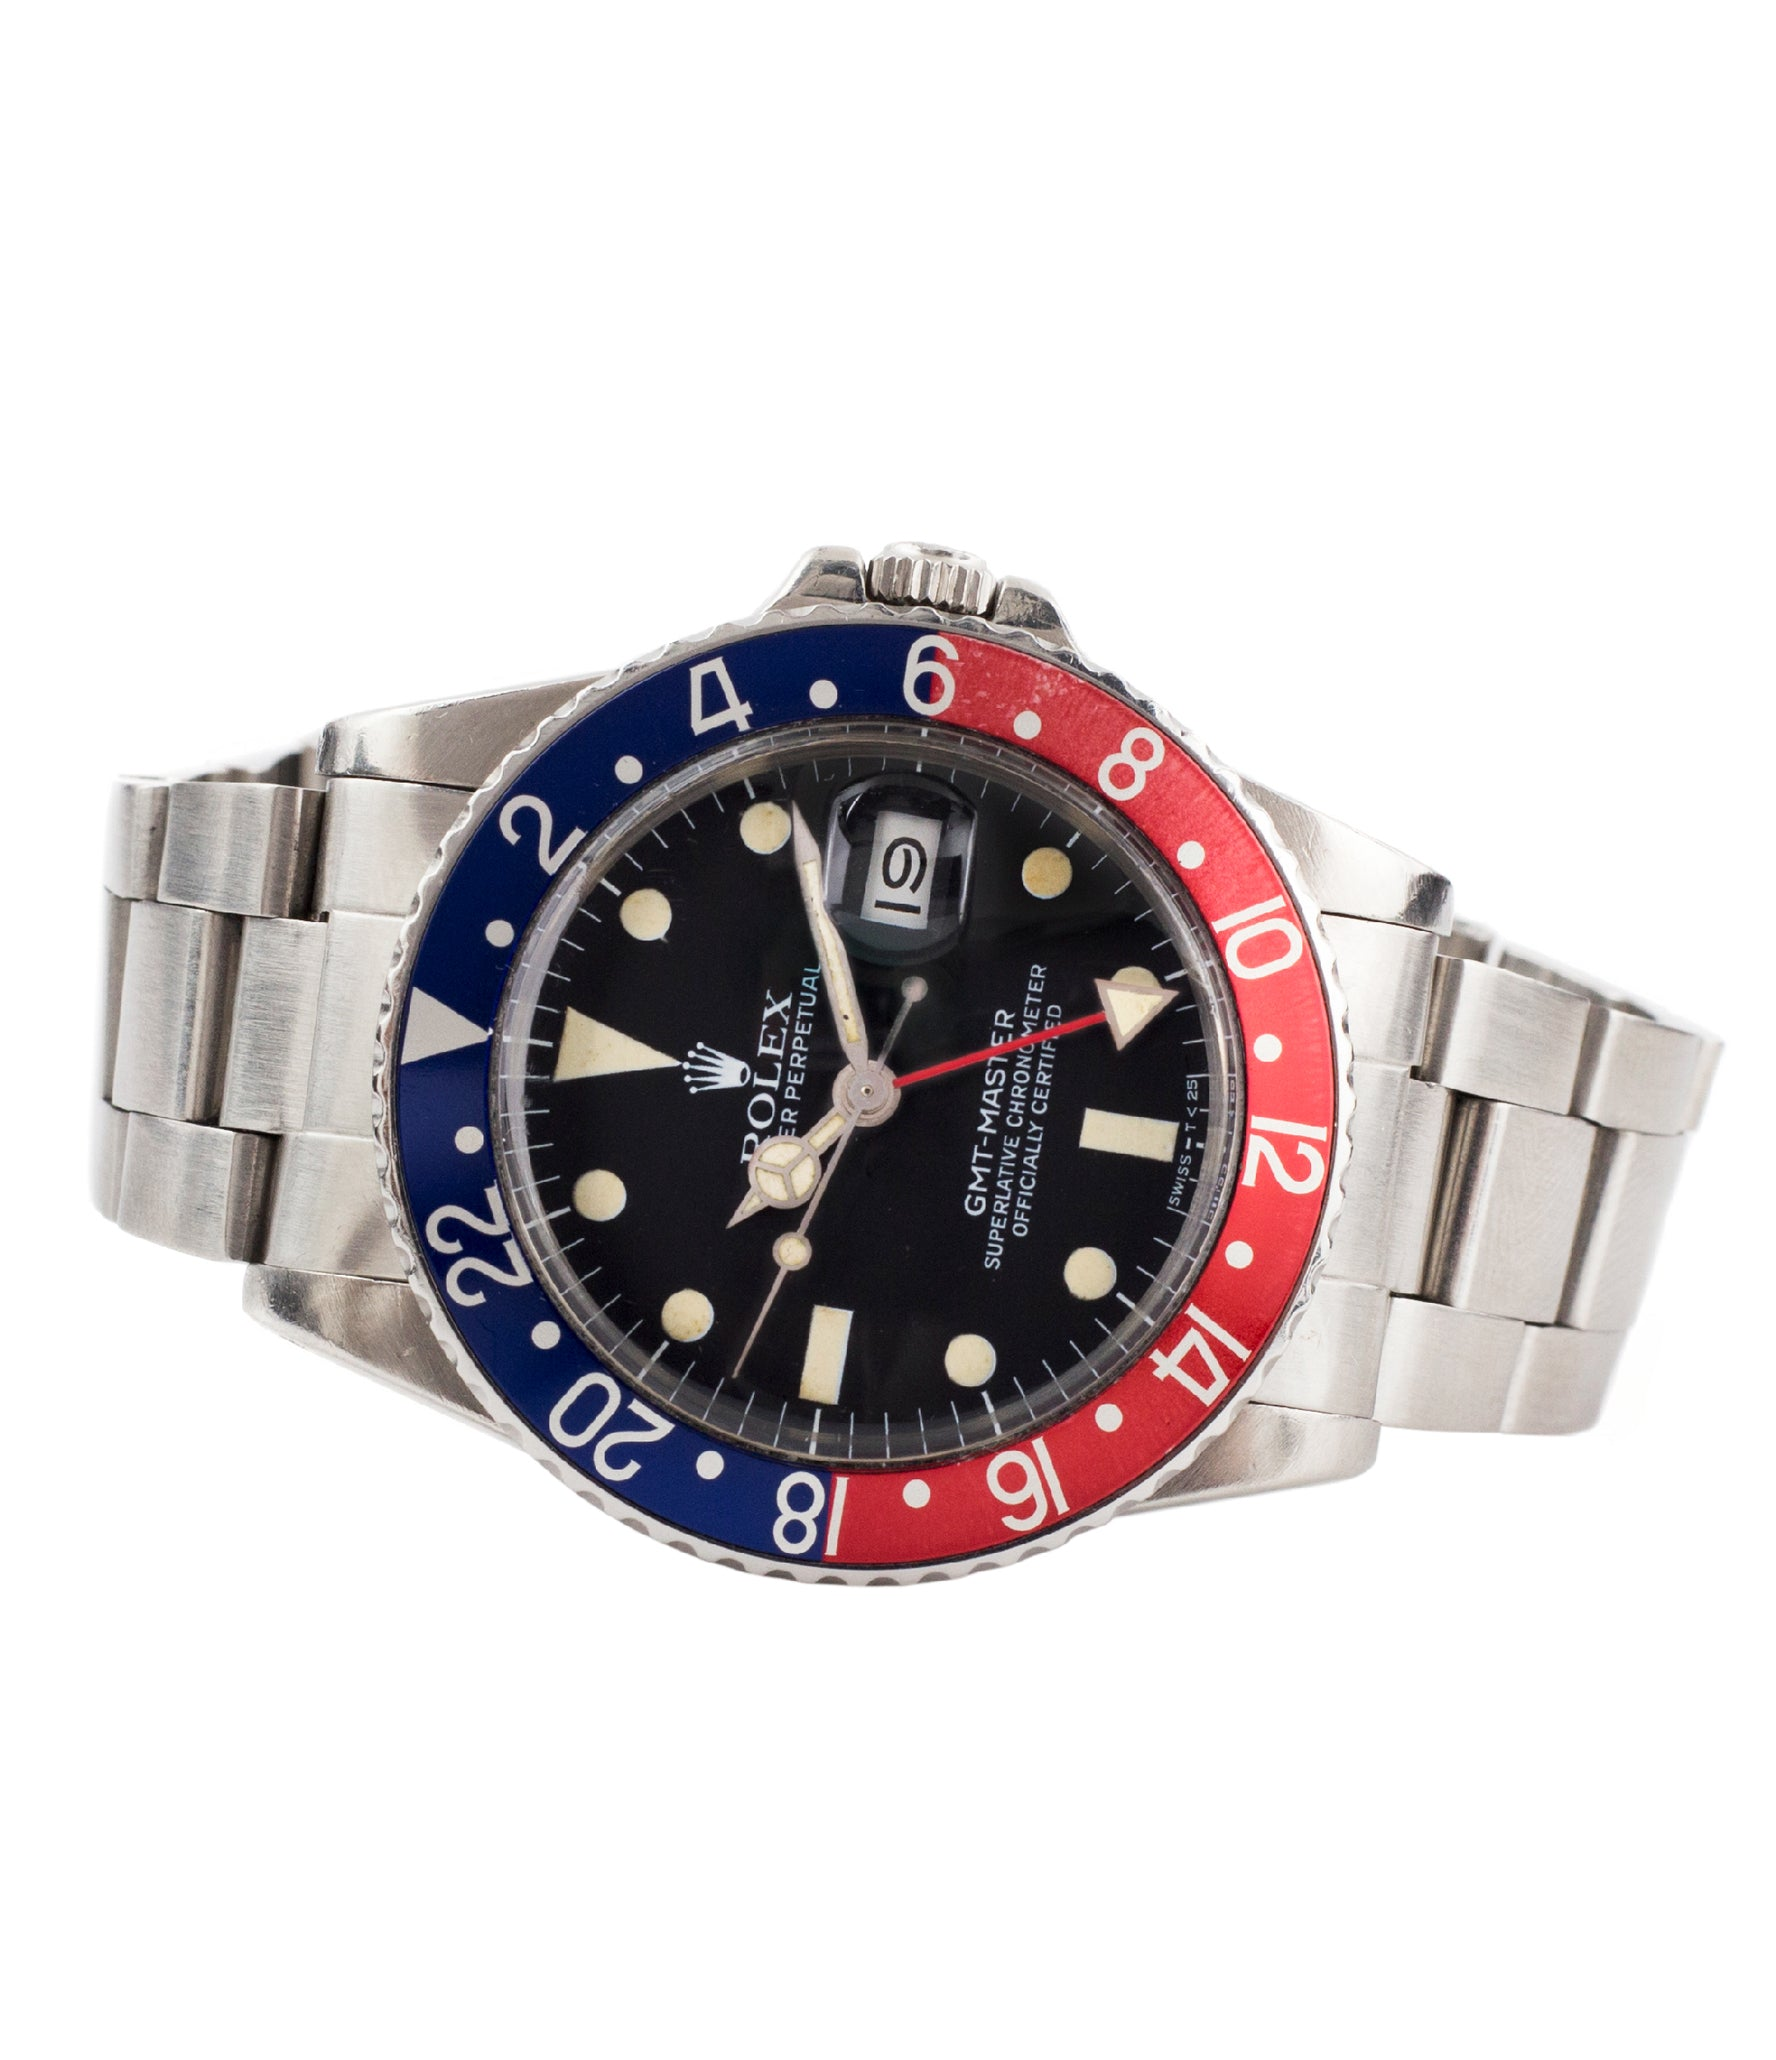 buy Rolex 16750 GMT-Master Pepsi bezel steel sport traveller watch for sale online at A Collected Man London vintage watch specialist